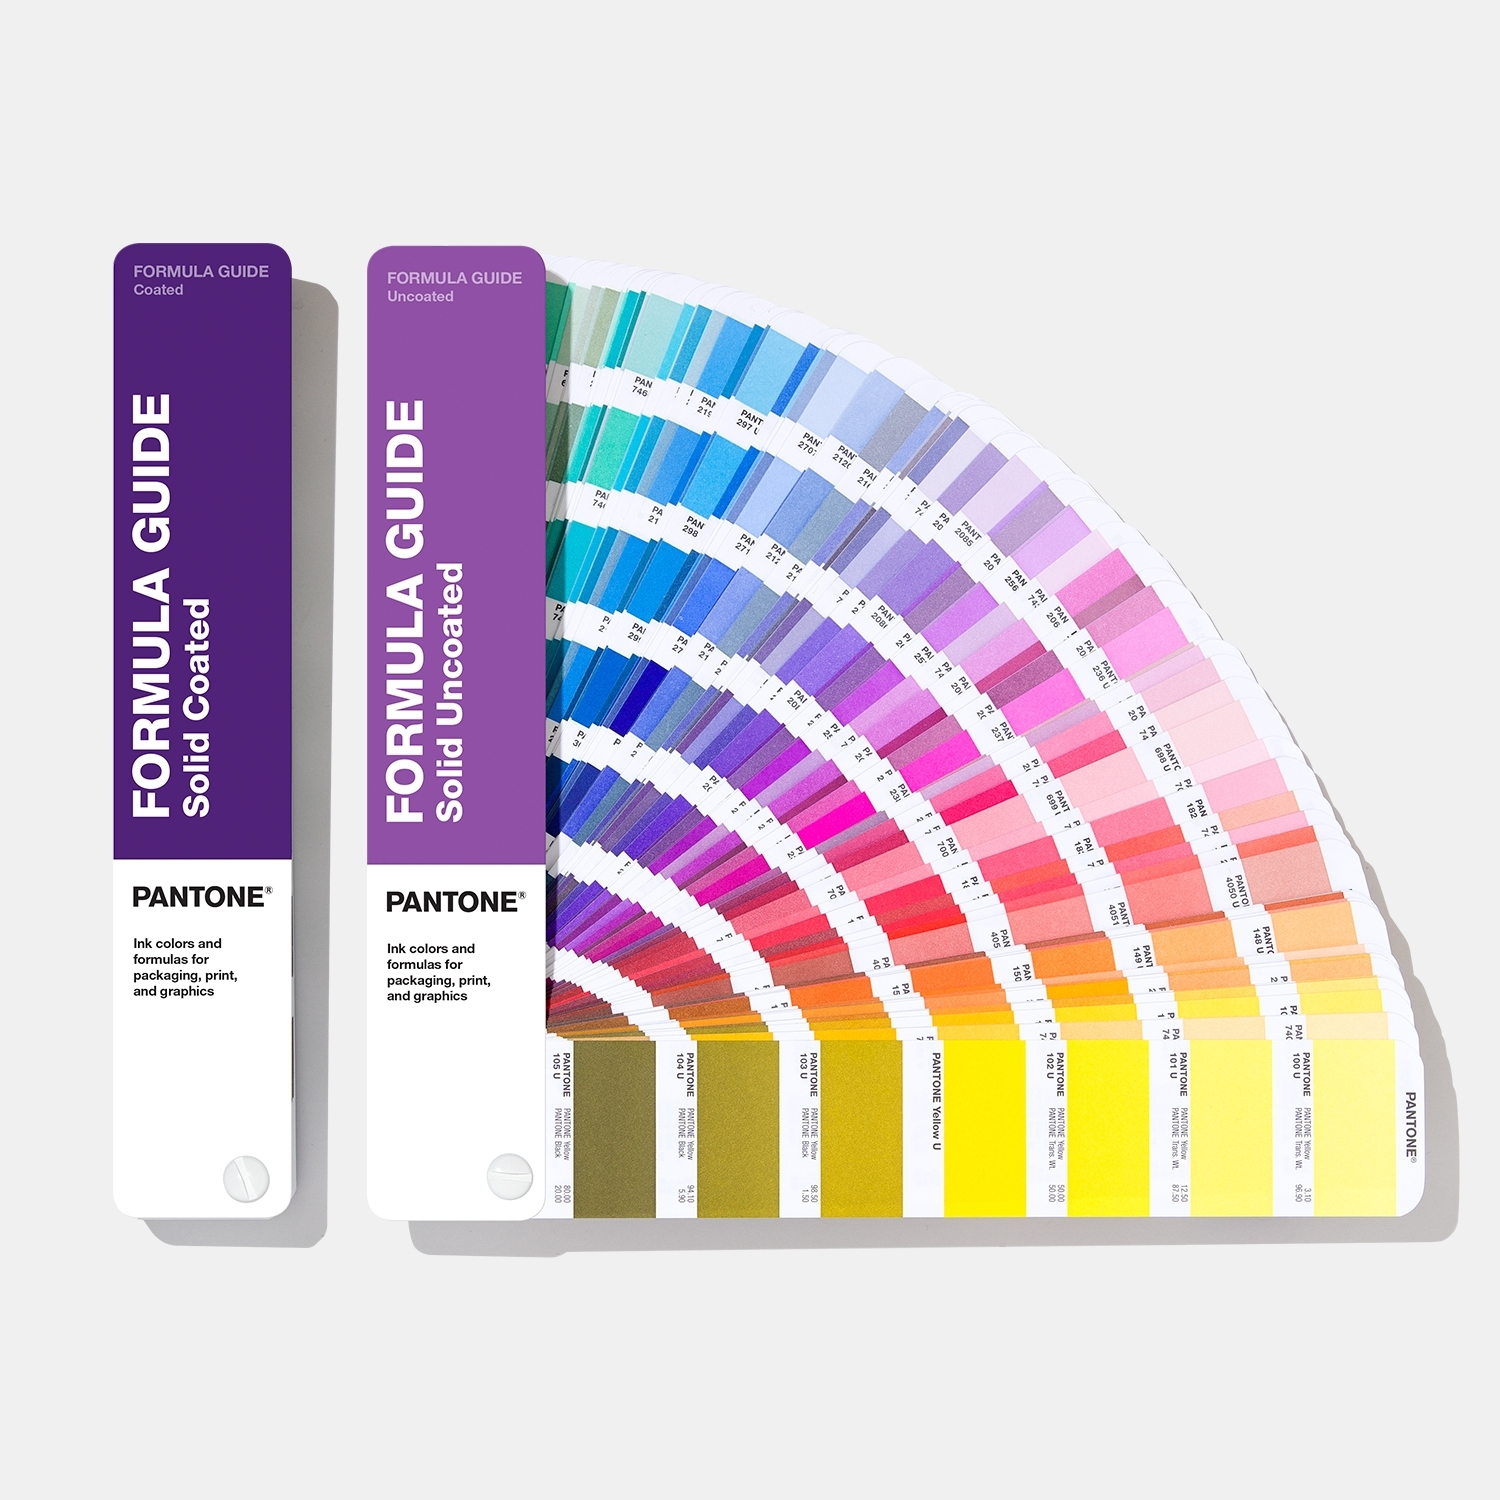 Pantone Formula Guide Supplement | Coated & Uncoated Update your essential color guide with new colors - View 1